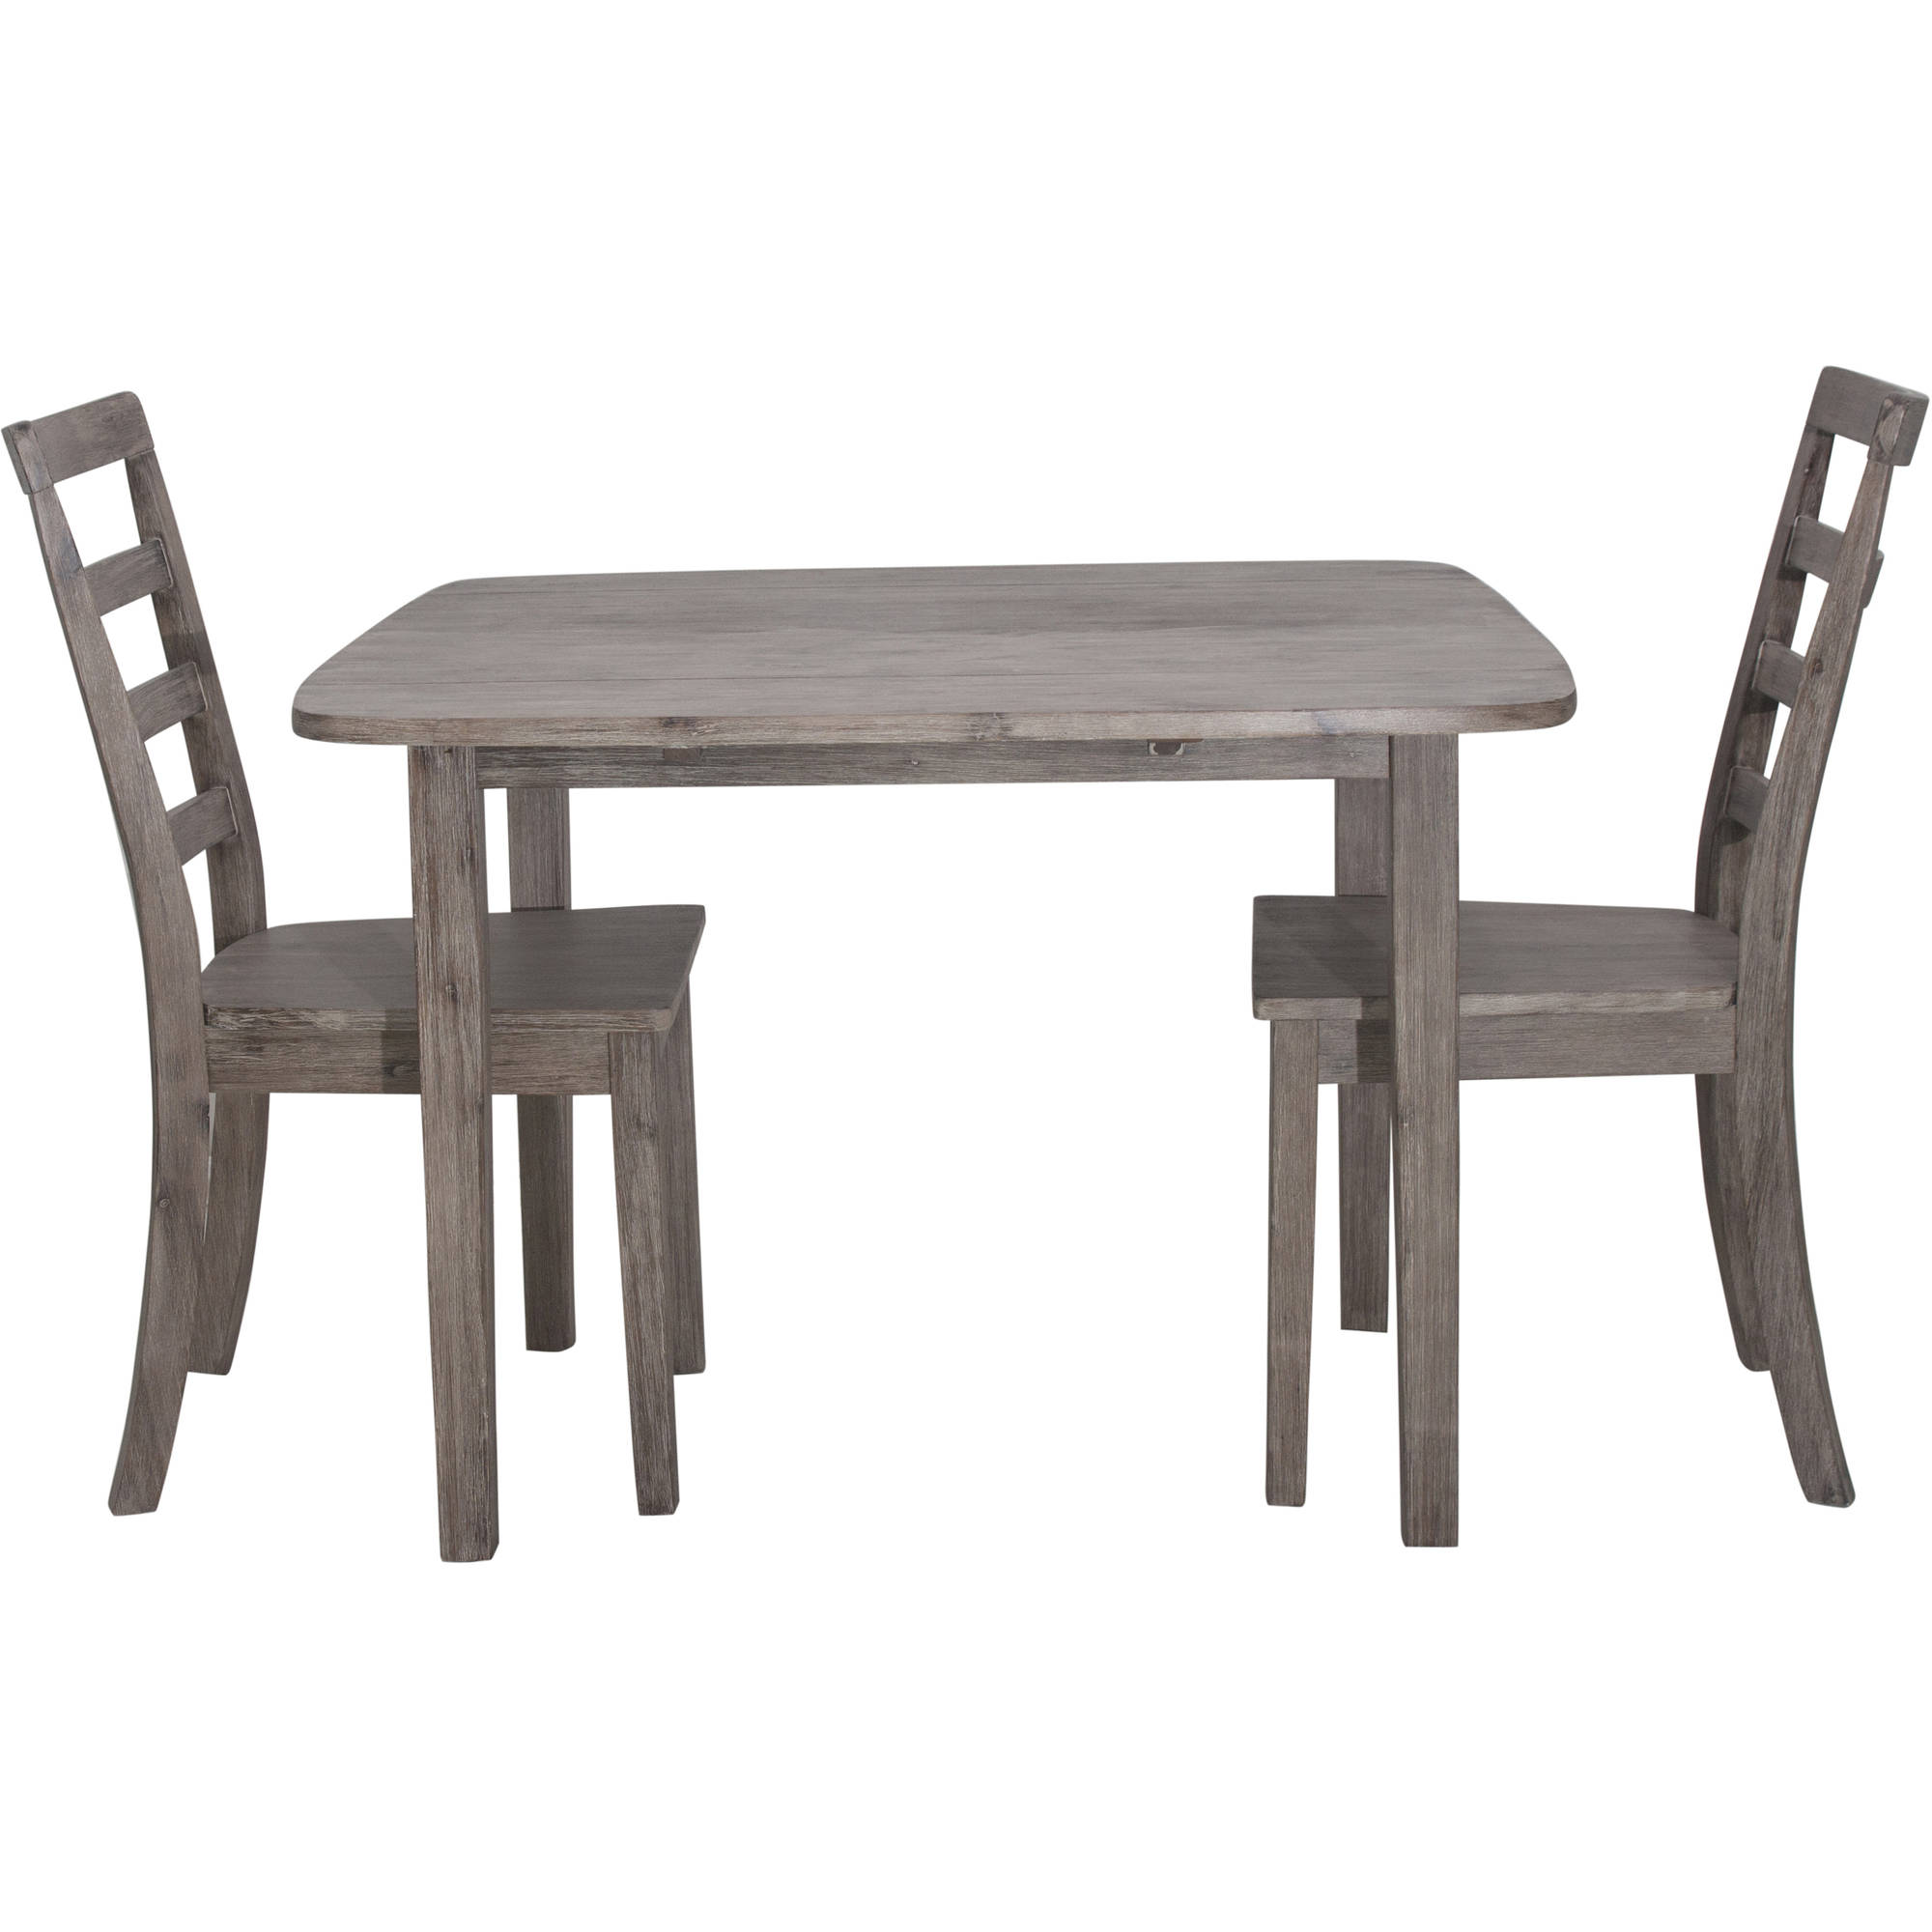 Boraam Boulder 3-Piece Dining Room Set, Gray Wire Brushed by Boraam Industries